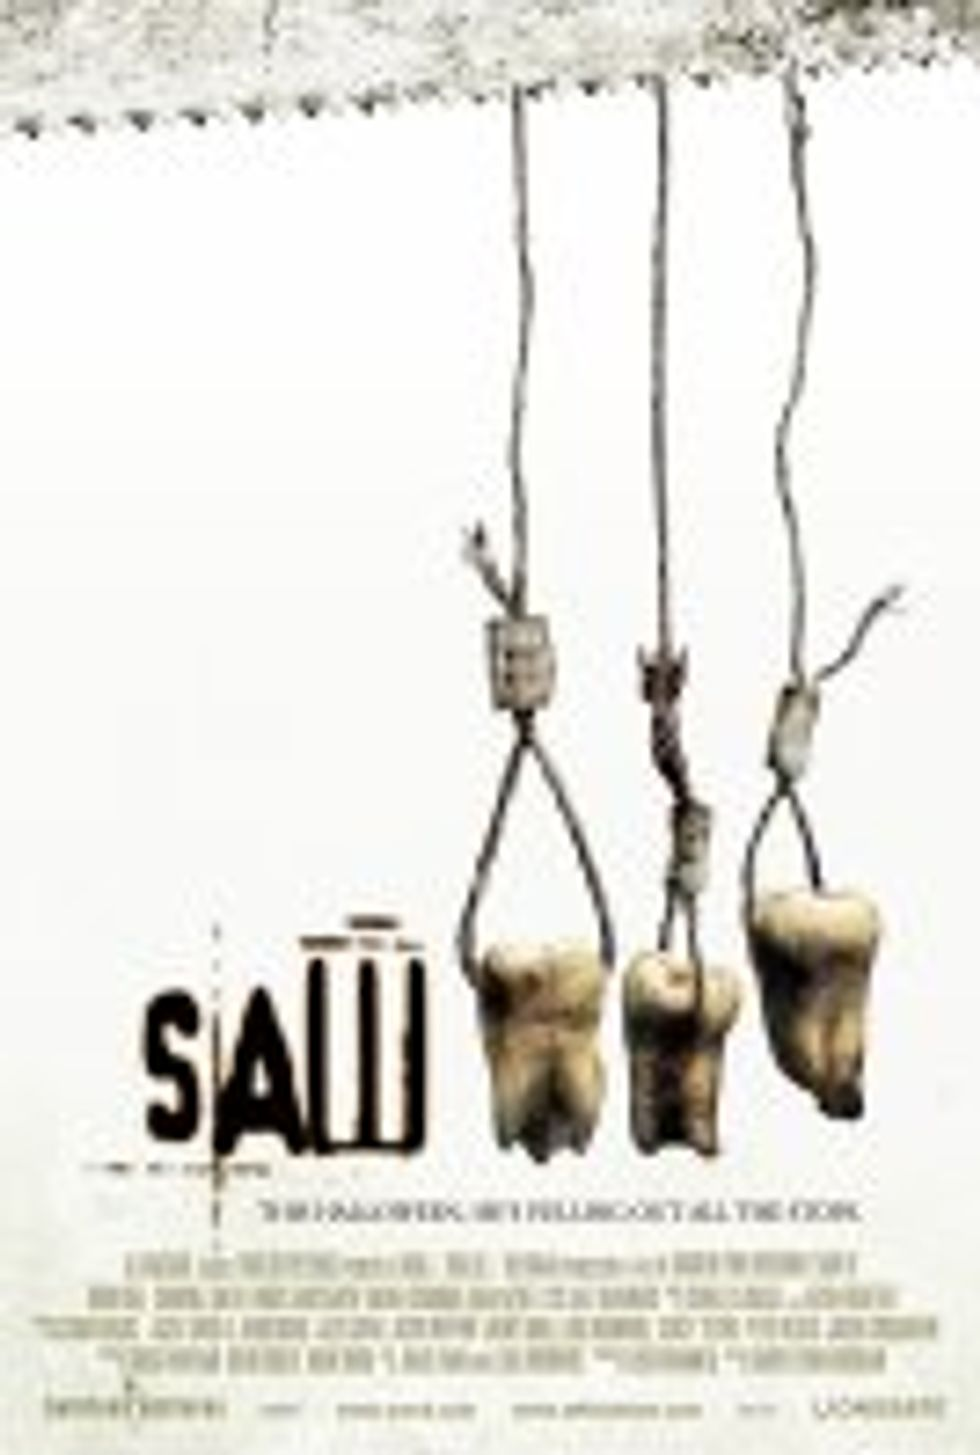 Dan Neil on Seeing Saw